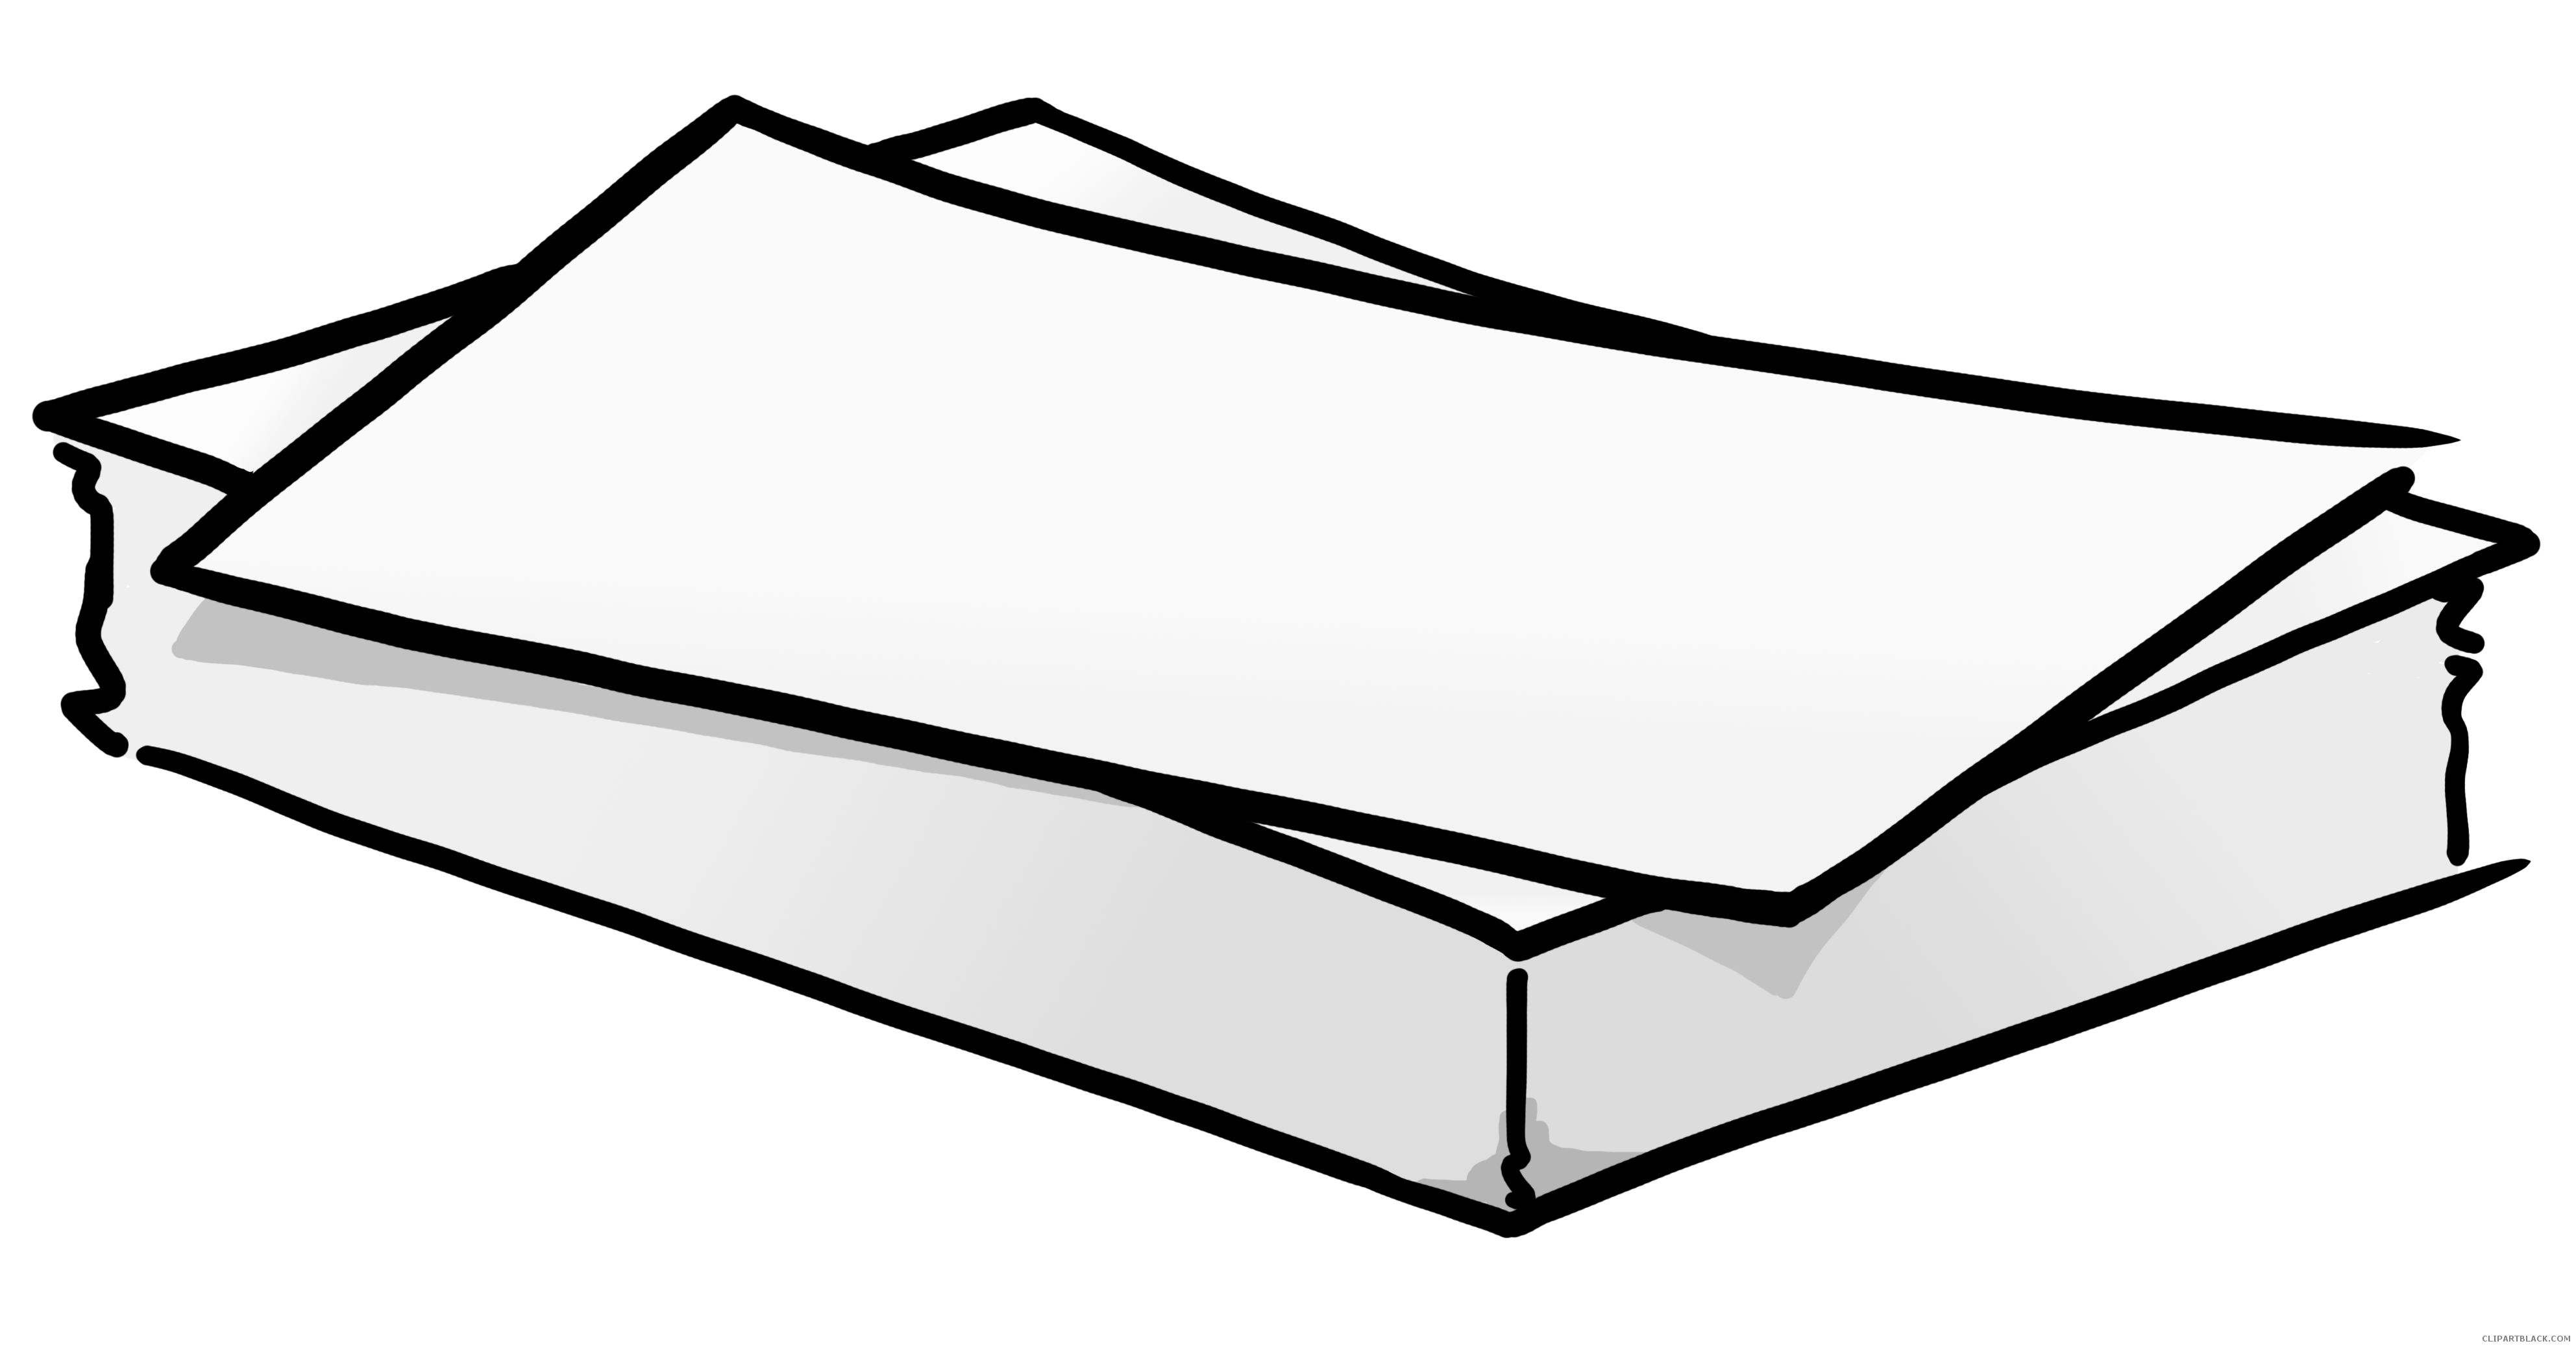 Stack of clipartblack com. Paper clipart black and white